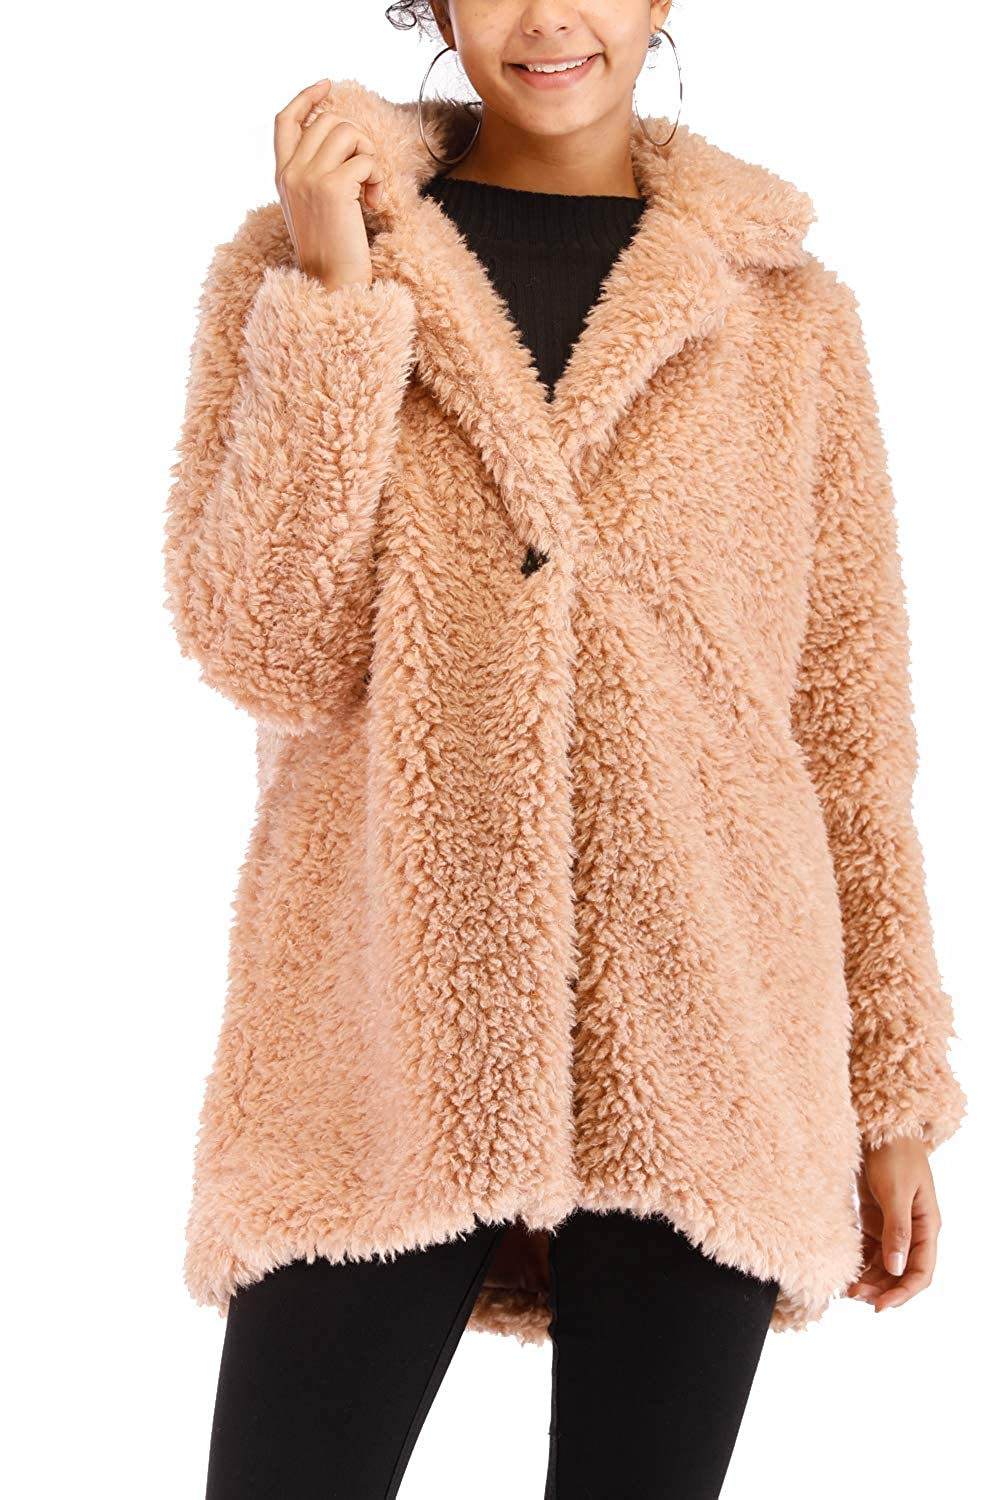 af637c74268f0 Womens Warm Fluffy Shaggy Faux Fur Zip up Jacket Womens Warm Fluffy Shaggy Faux  Fur Casual Oversized Outwear Coat Womens Warm Fluffy Shaggy Faux Fur Zip up  ...